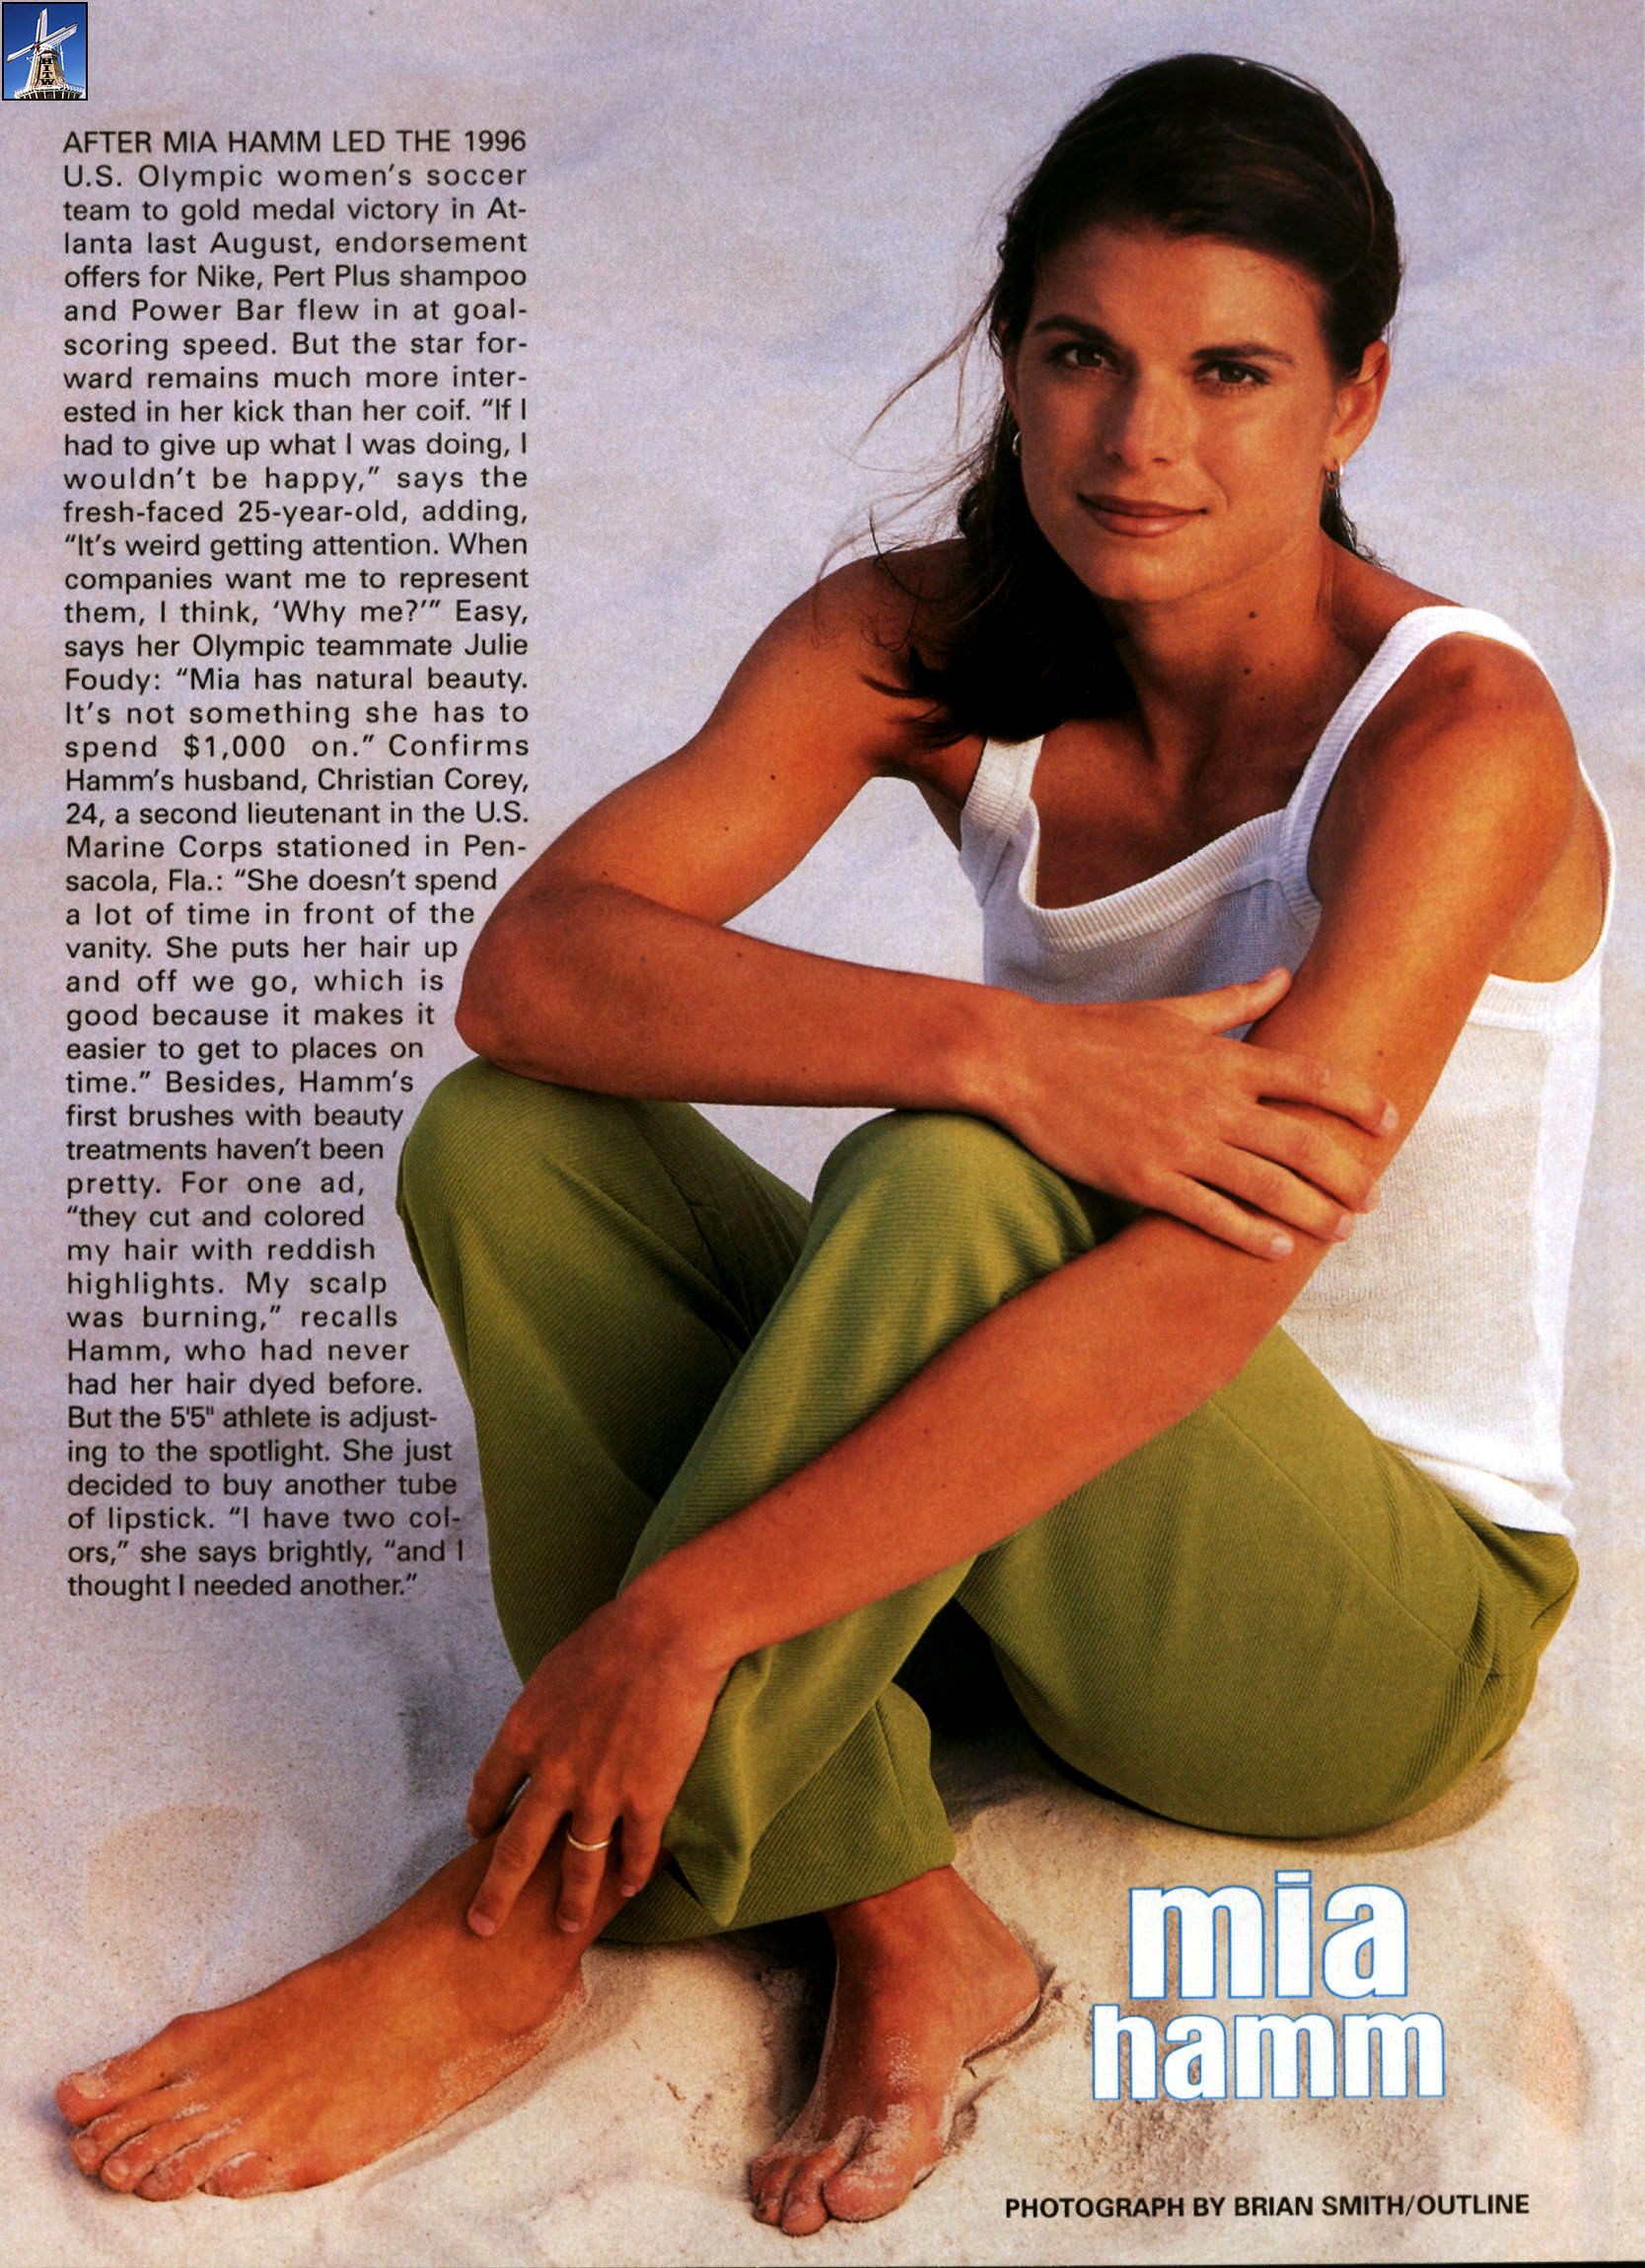 mia hamm feet images pic source